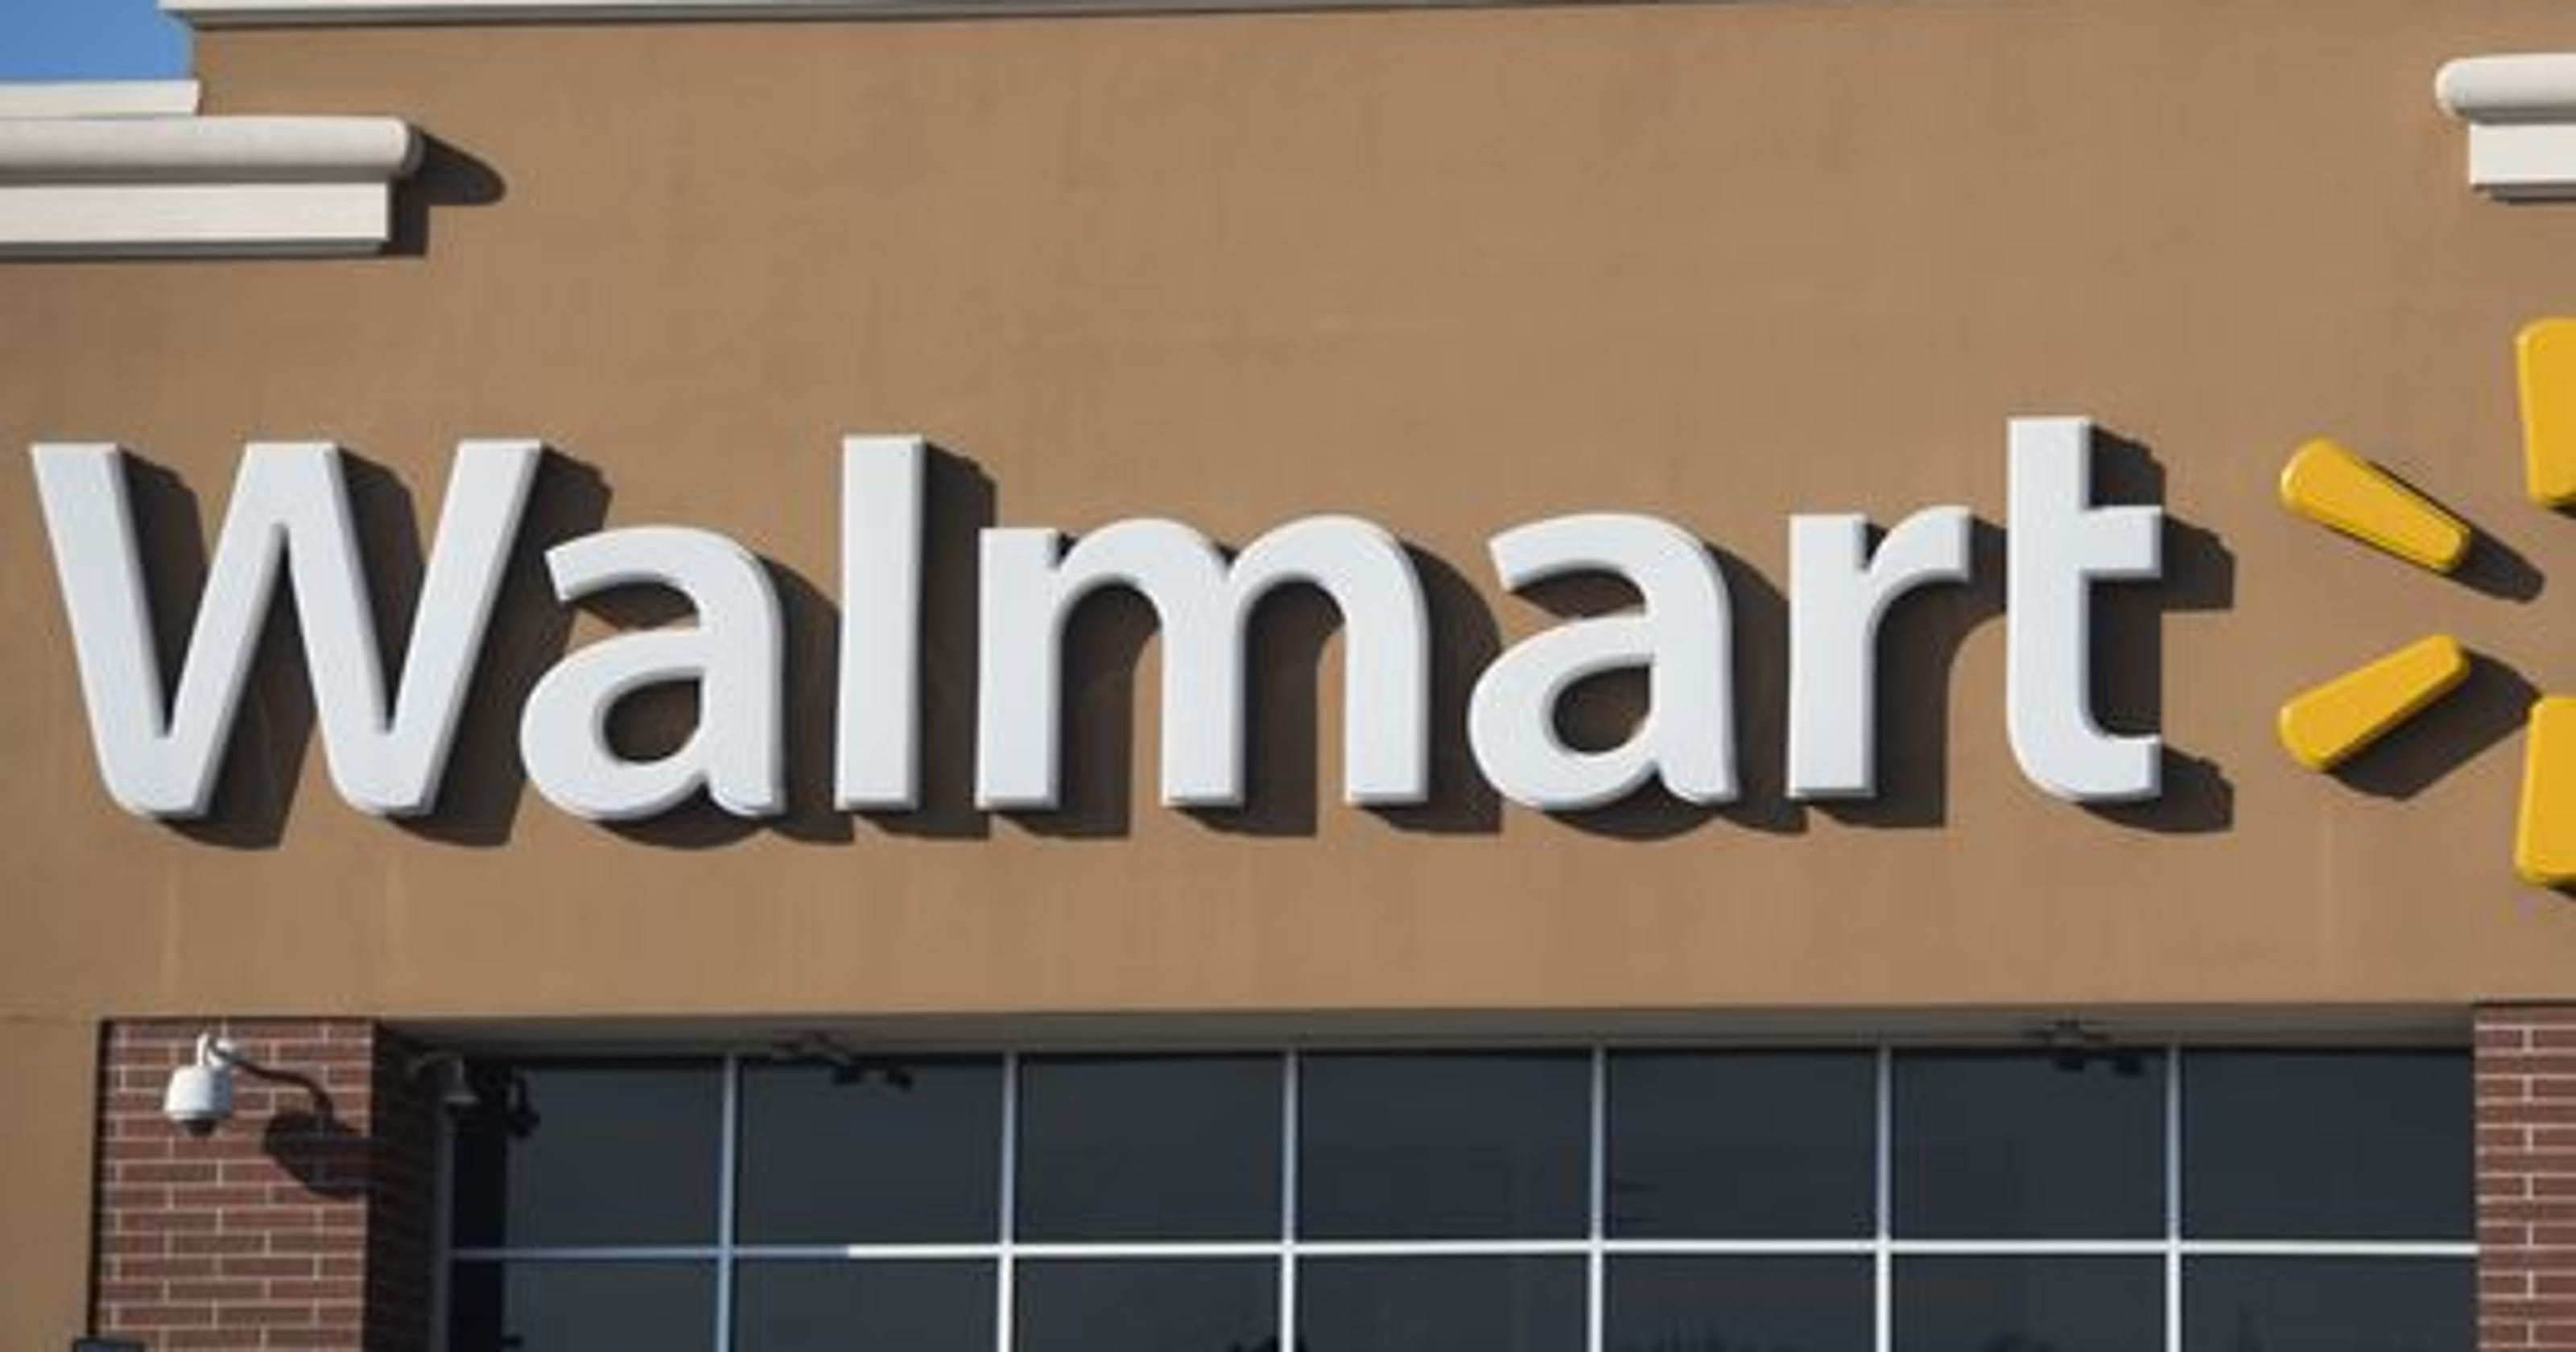 layaway angel pays off more than 106k at walmart stores - When Does Walmart Christmas Layaway Start